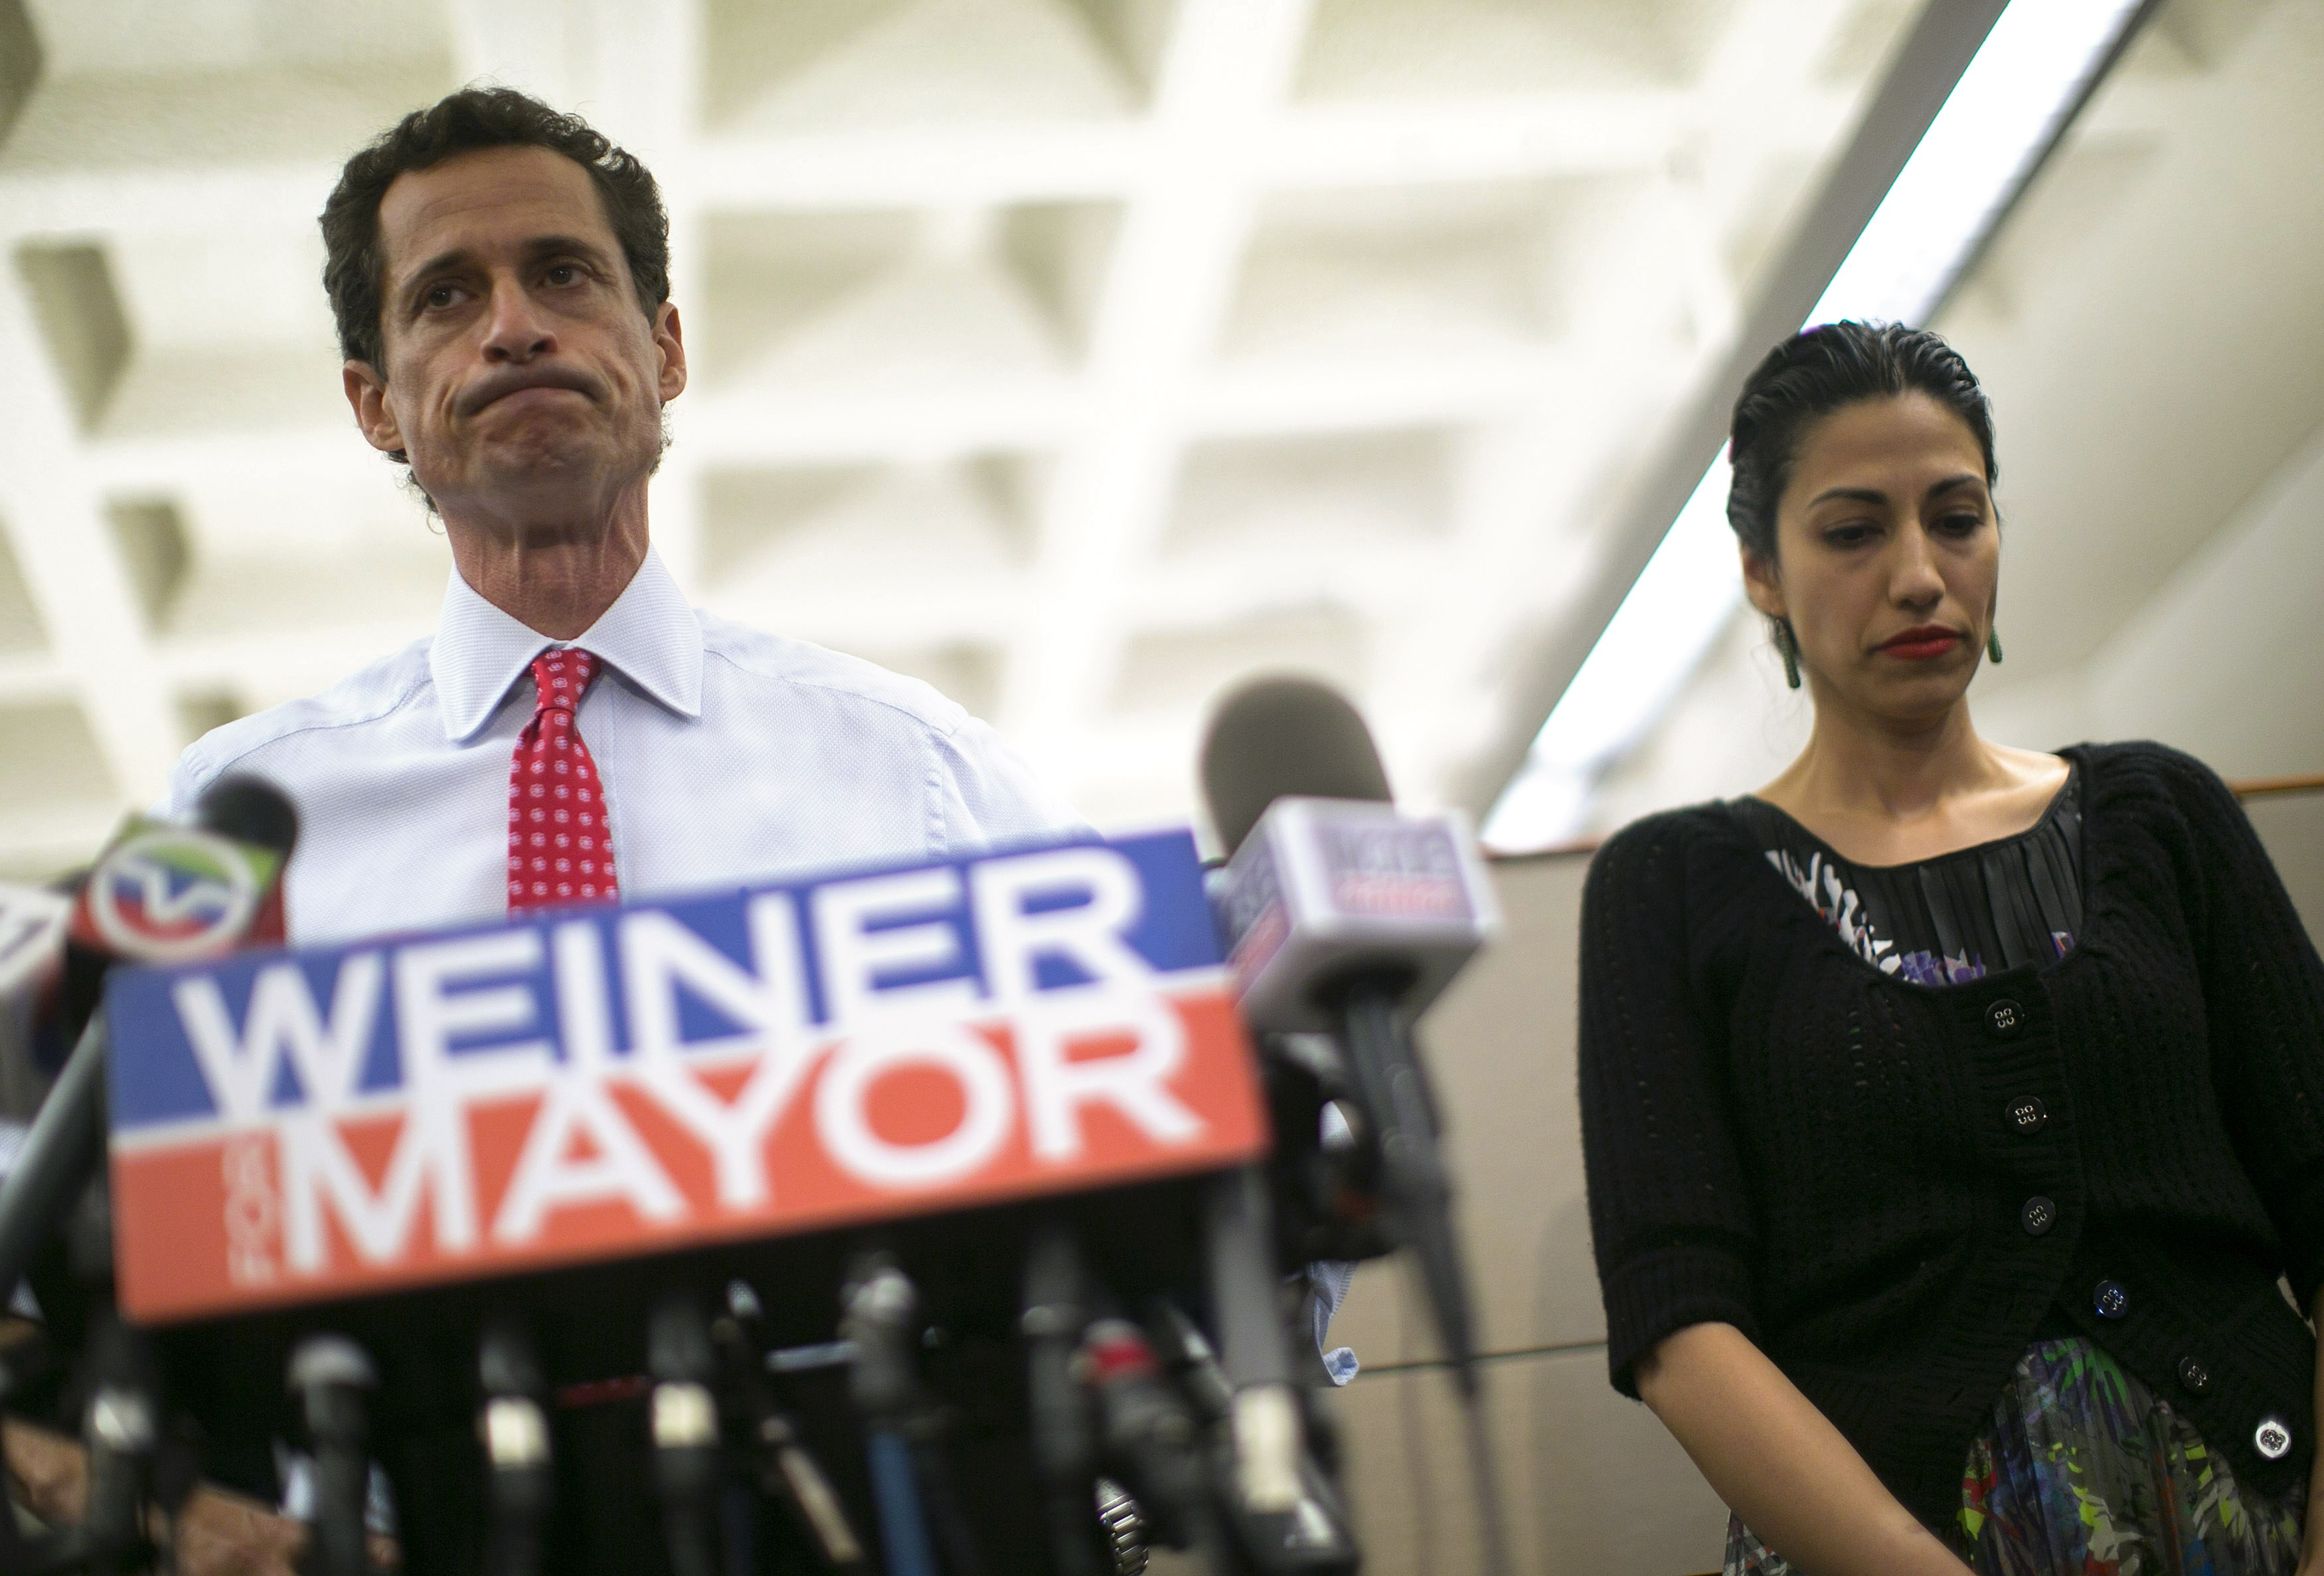 WYSK: Diaz Calls On ACS to Investigate Anthony Weiner and Huma Abedin